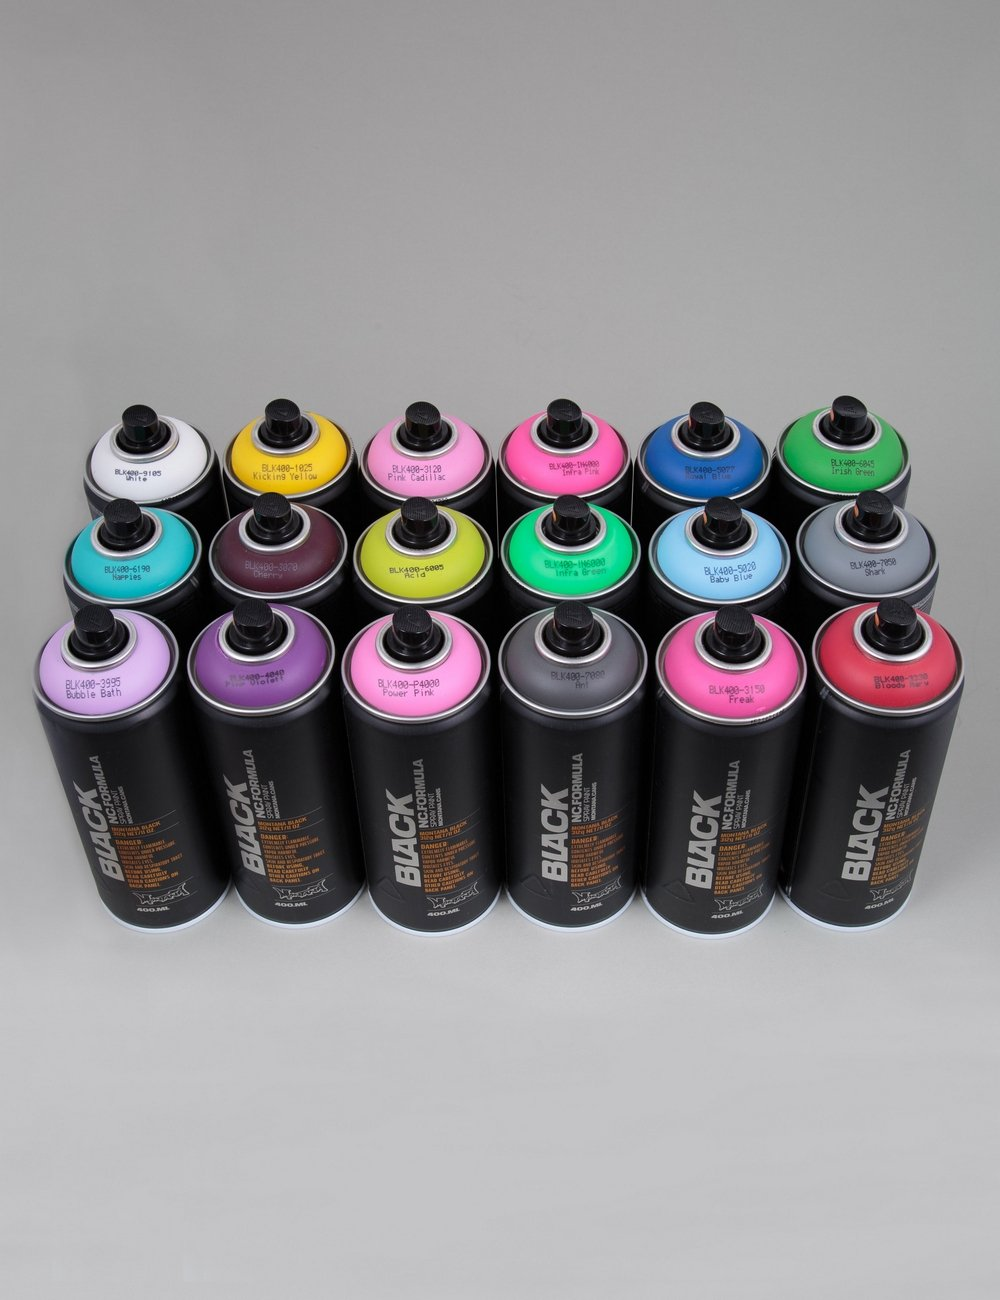 Montana Black Spray Paint Deal 18 Cans Spray Paint Supplies From Iconsume Uk